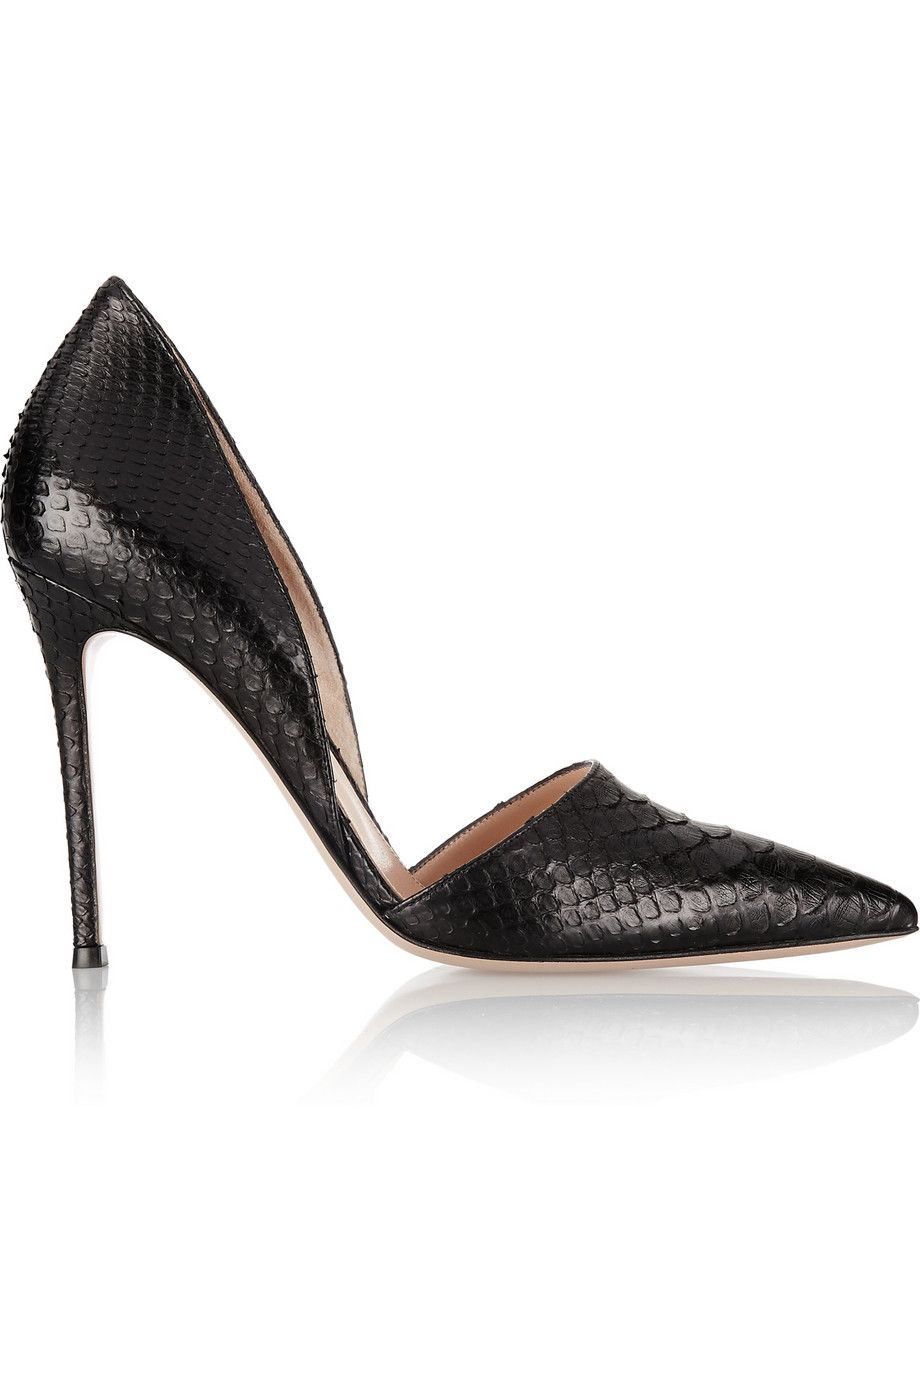 Gianvito Rossi | Python pumps #heels #shoes